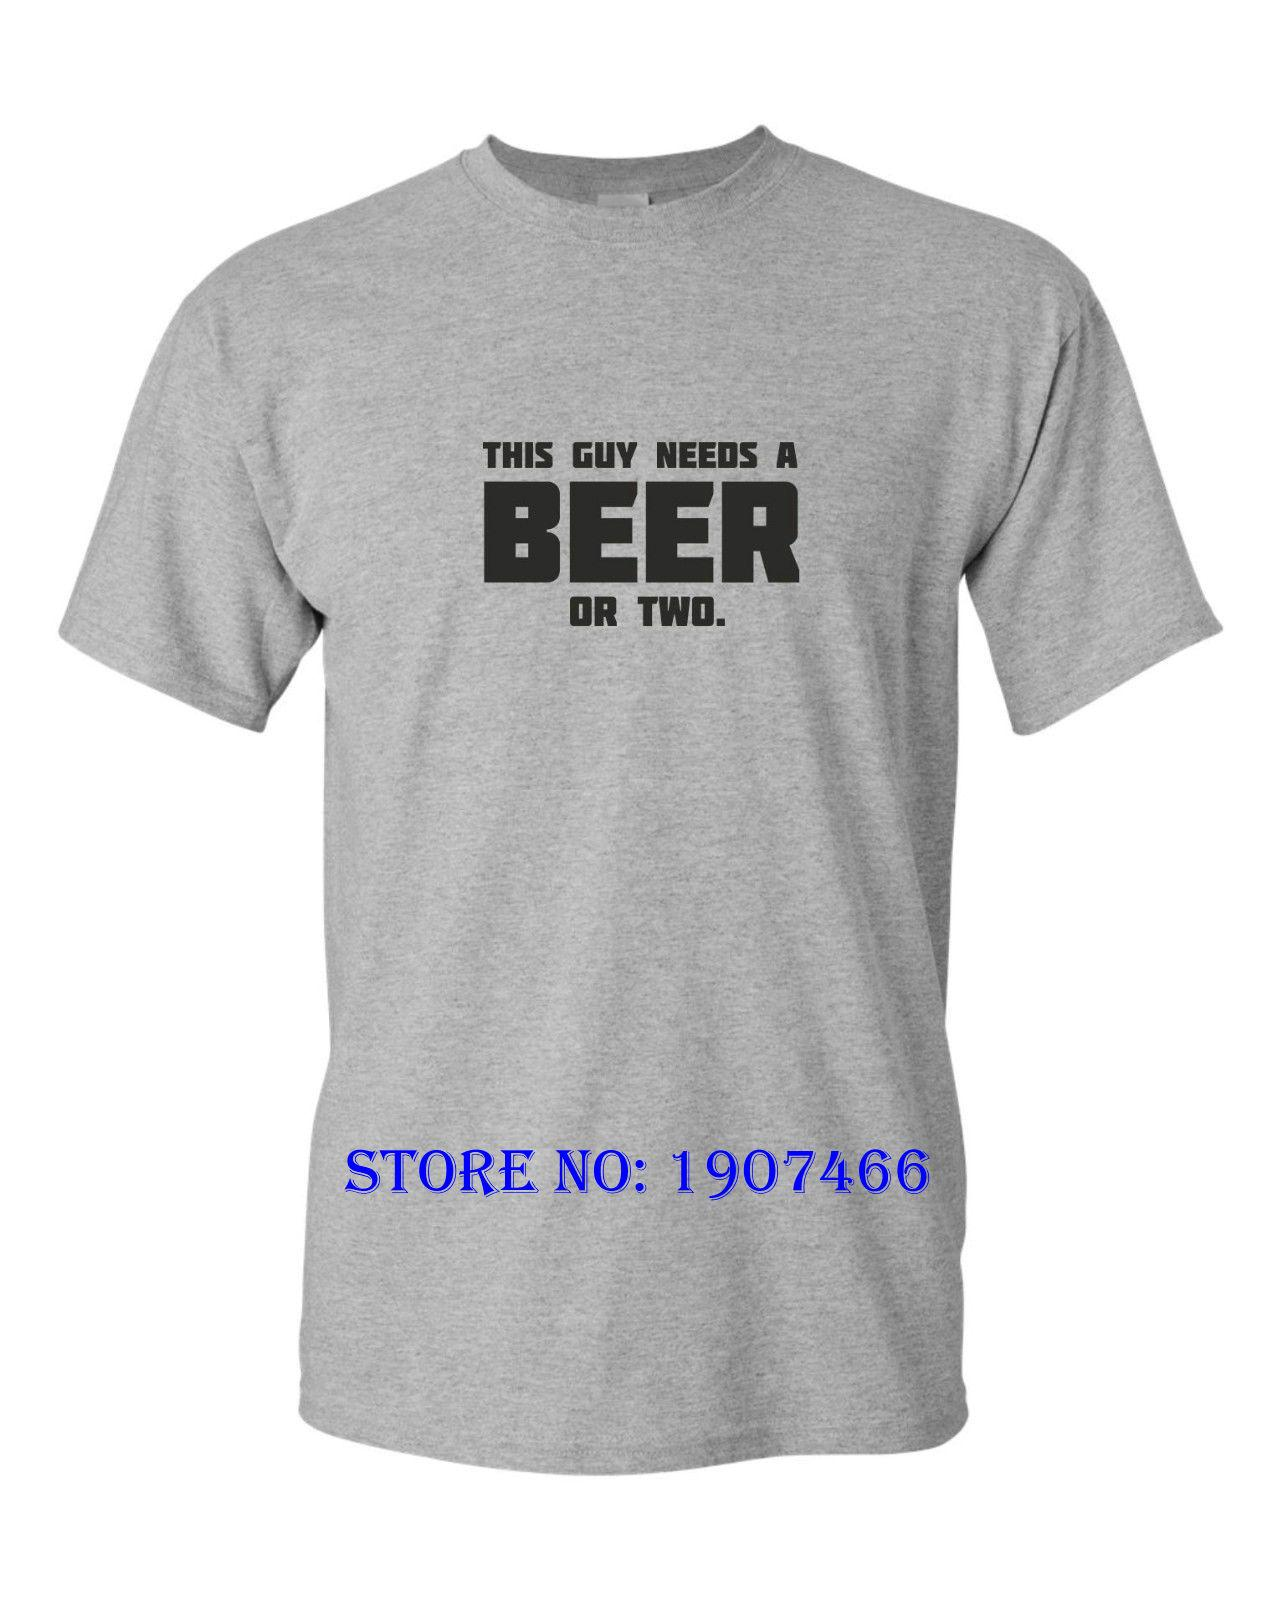 e8a65a60685c THIS GUY NEEDS A BEER OR TWO FUNNY T SHIRT Man Gift Party Pub Club Fun  Humour Fun Tee Shirts Silly T Shirts From Beidhgate04